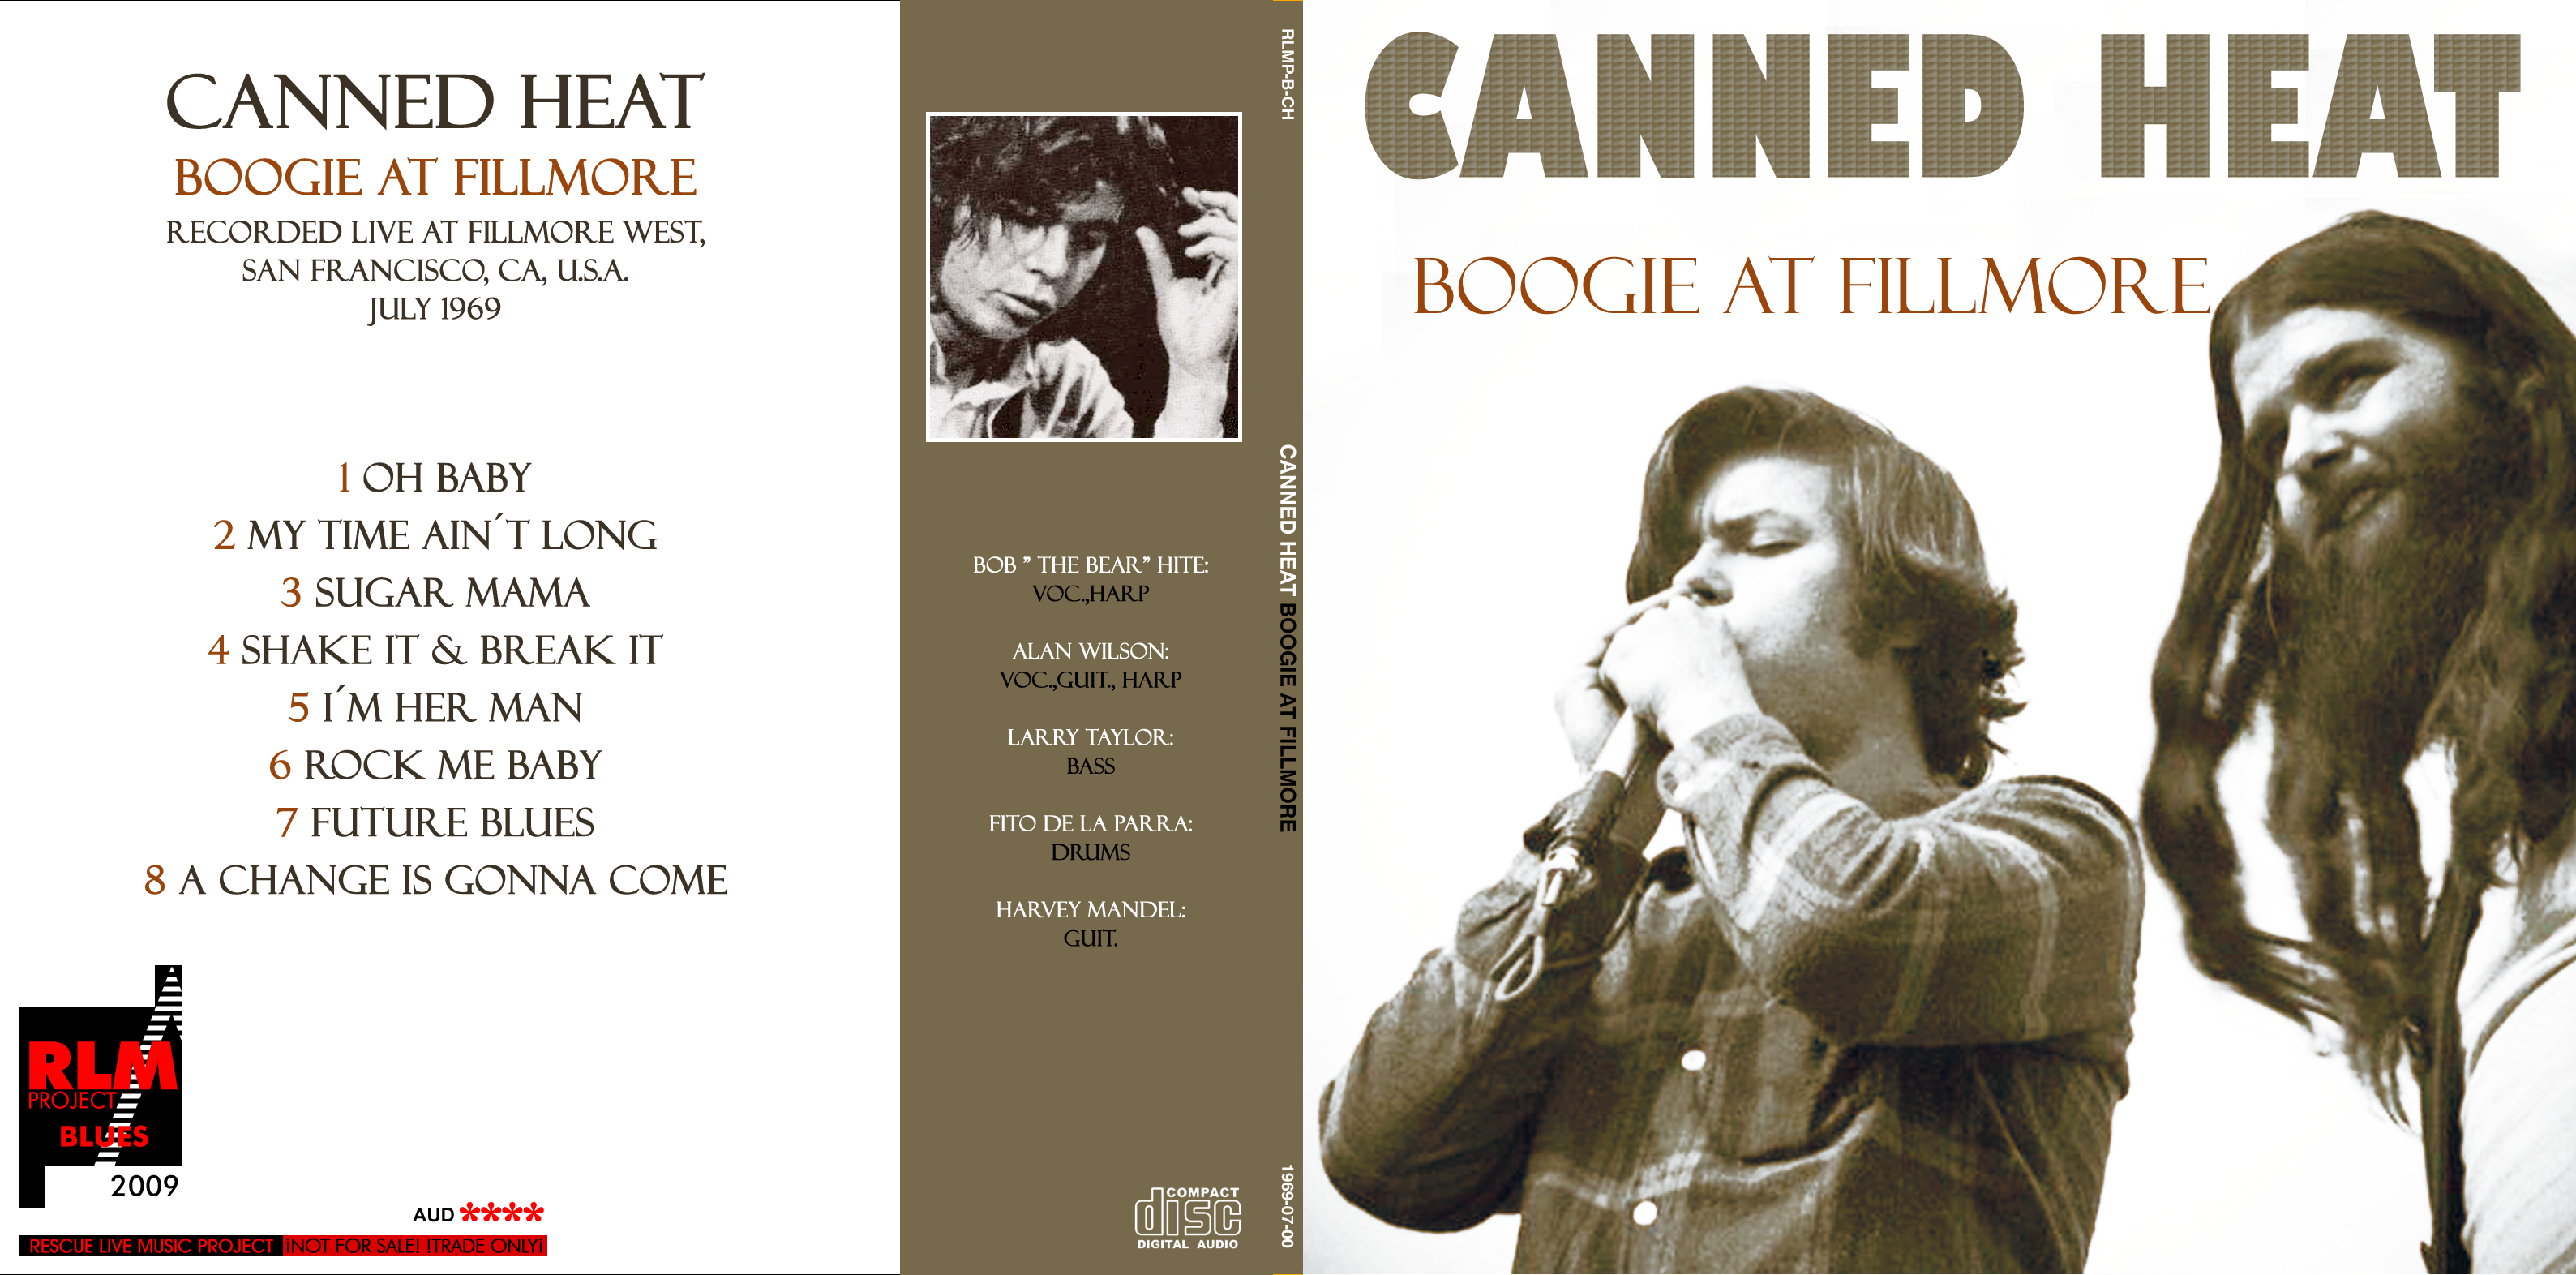 CannedHeat1969-07-01FillmoreWestSanFranciscoCA.png